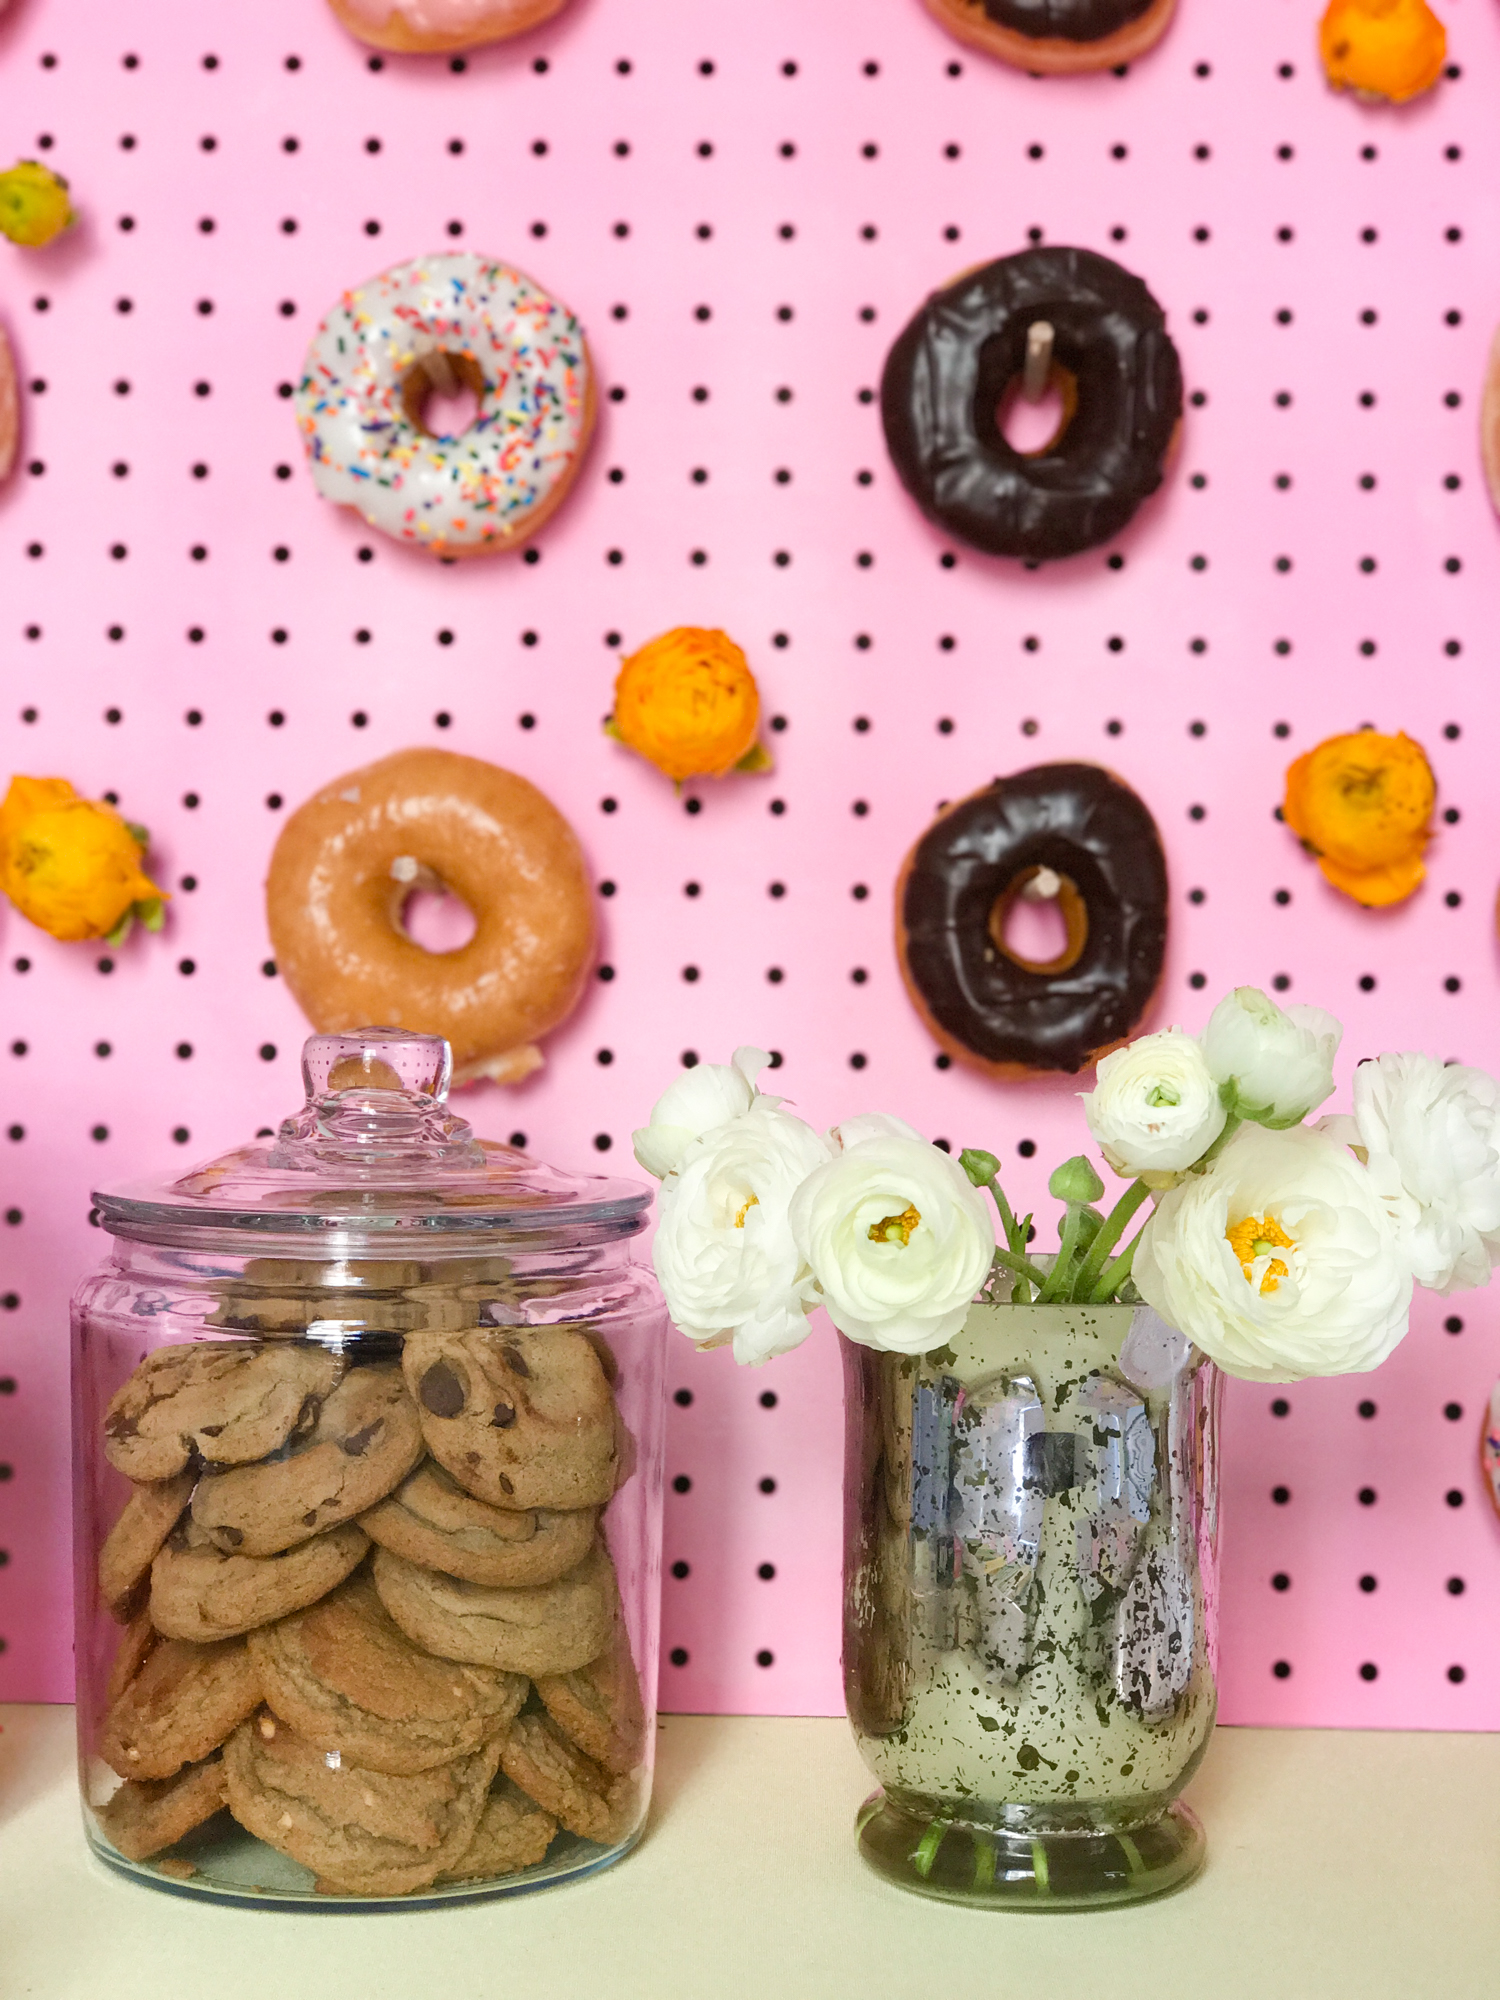 Okay yeah I need to make this donut wall ASAP! Instructions saved in the link.